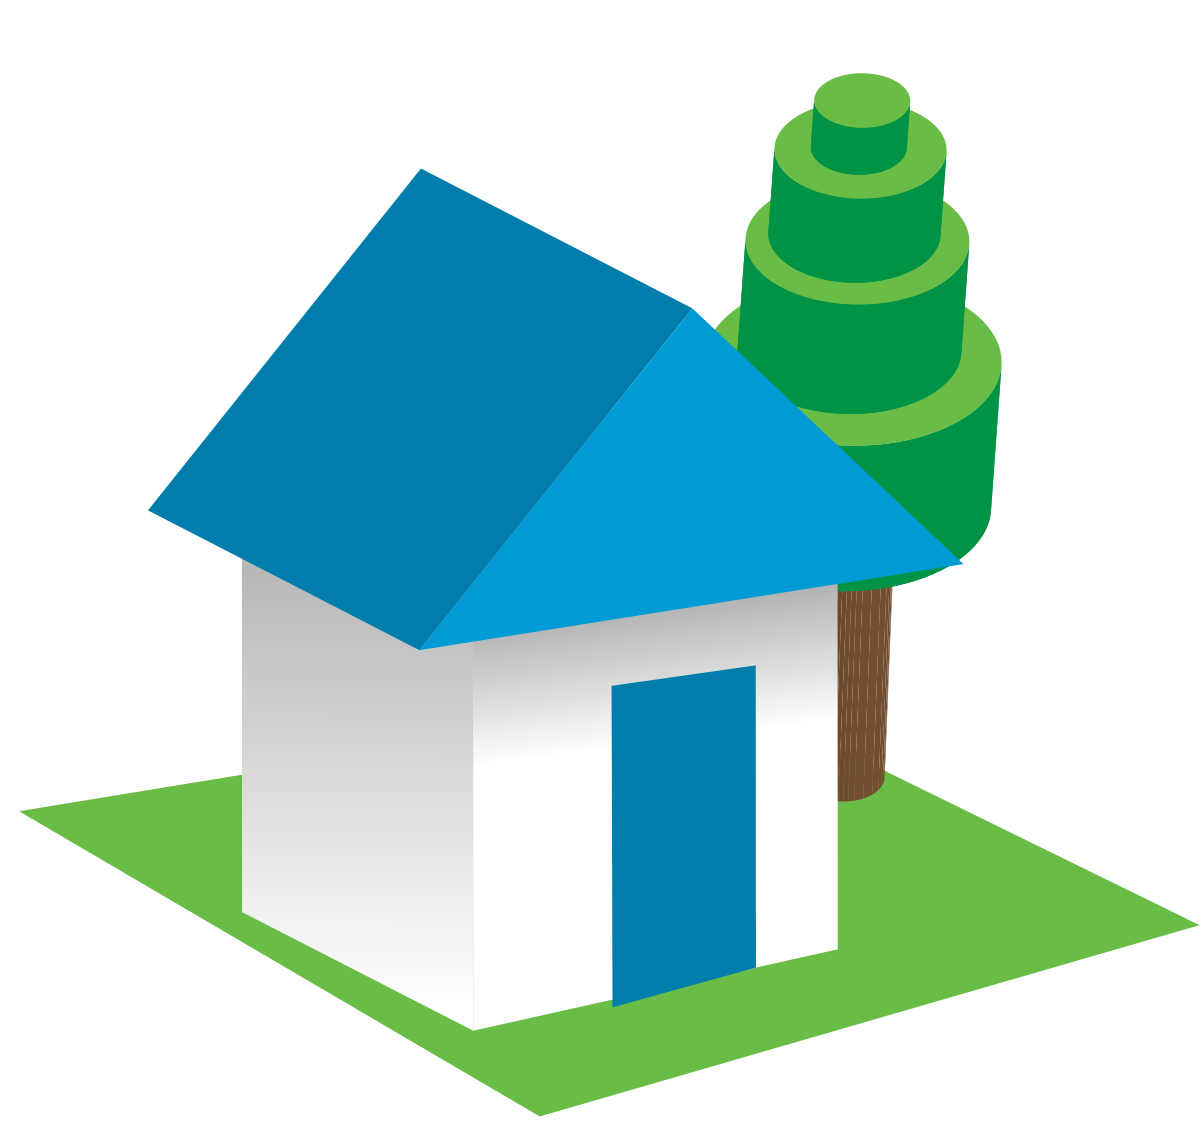 Houses clipart jpeg. Home free download best